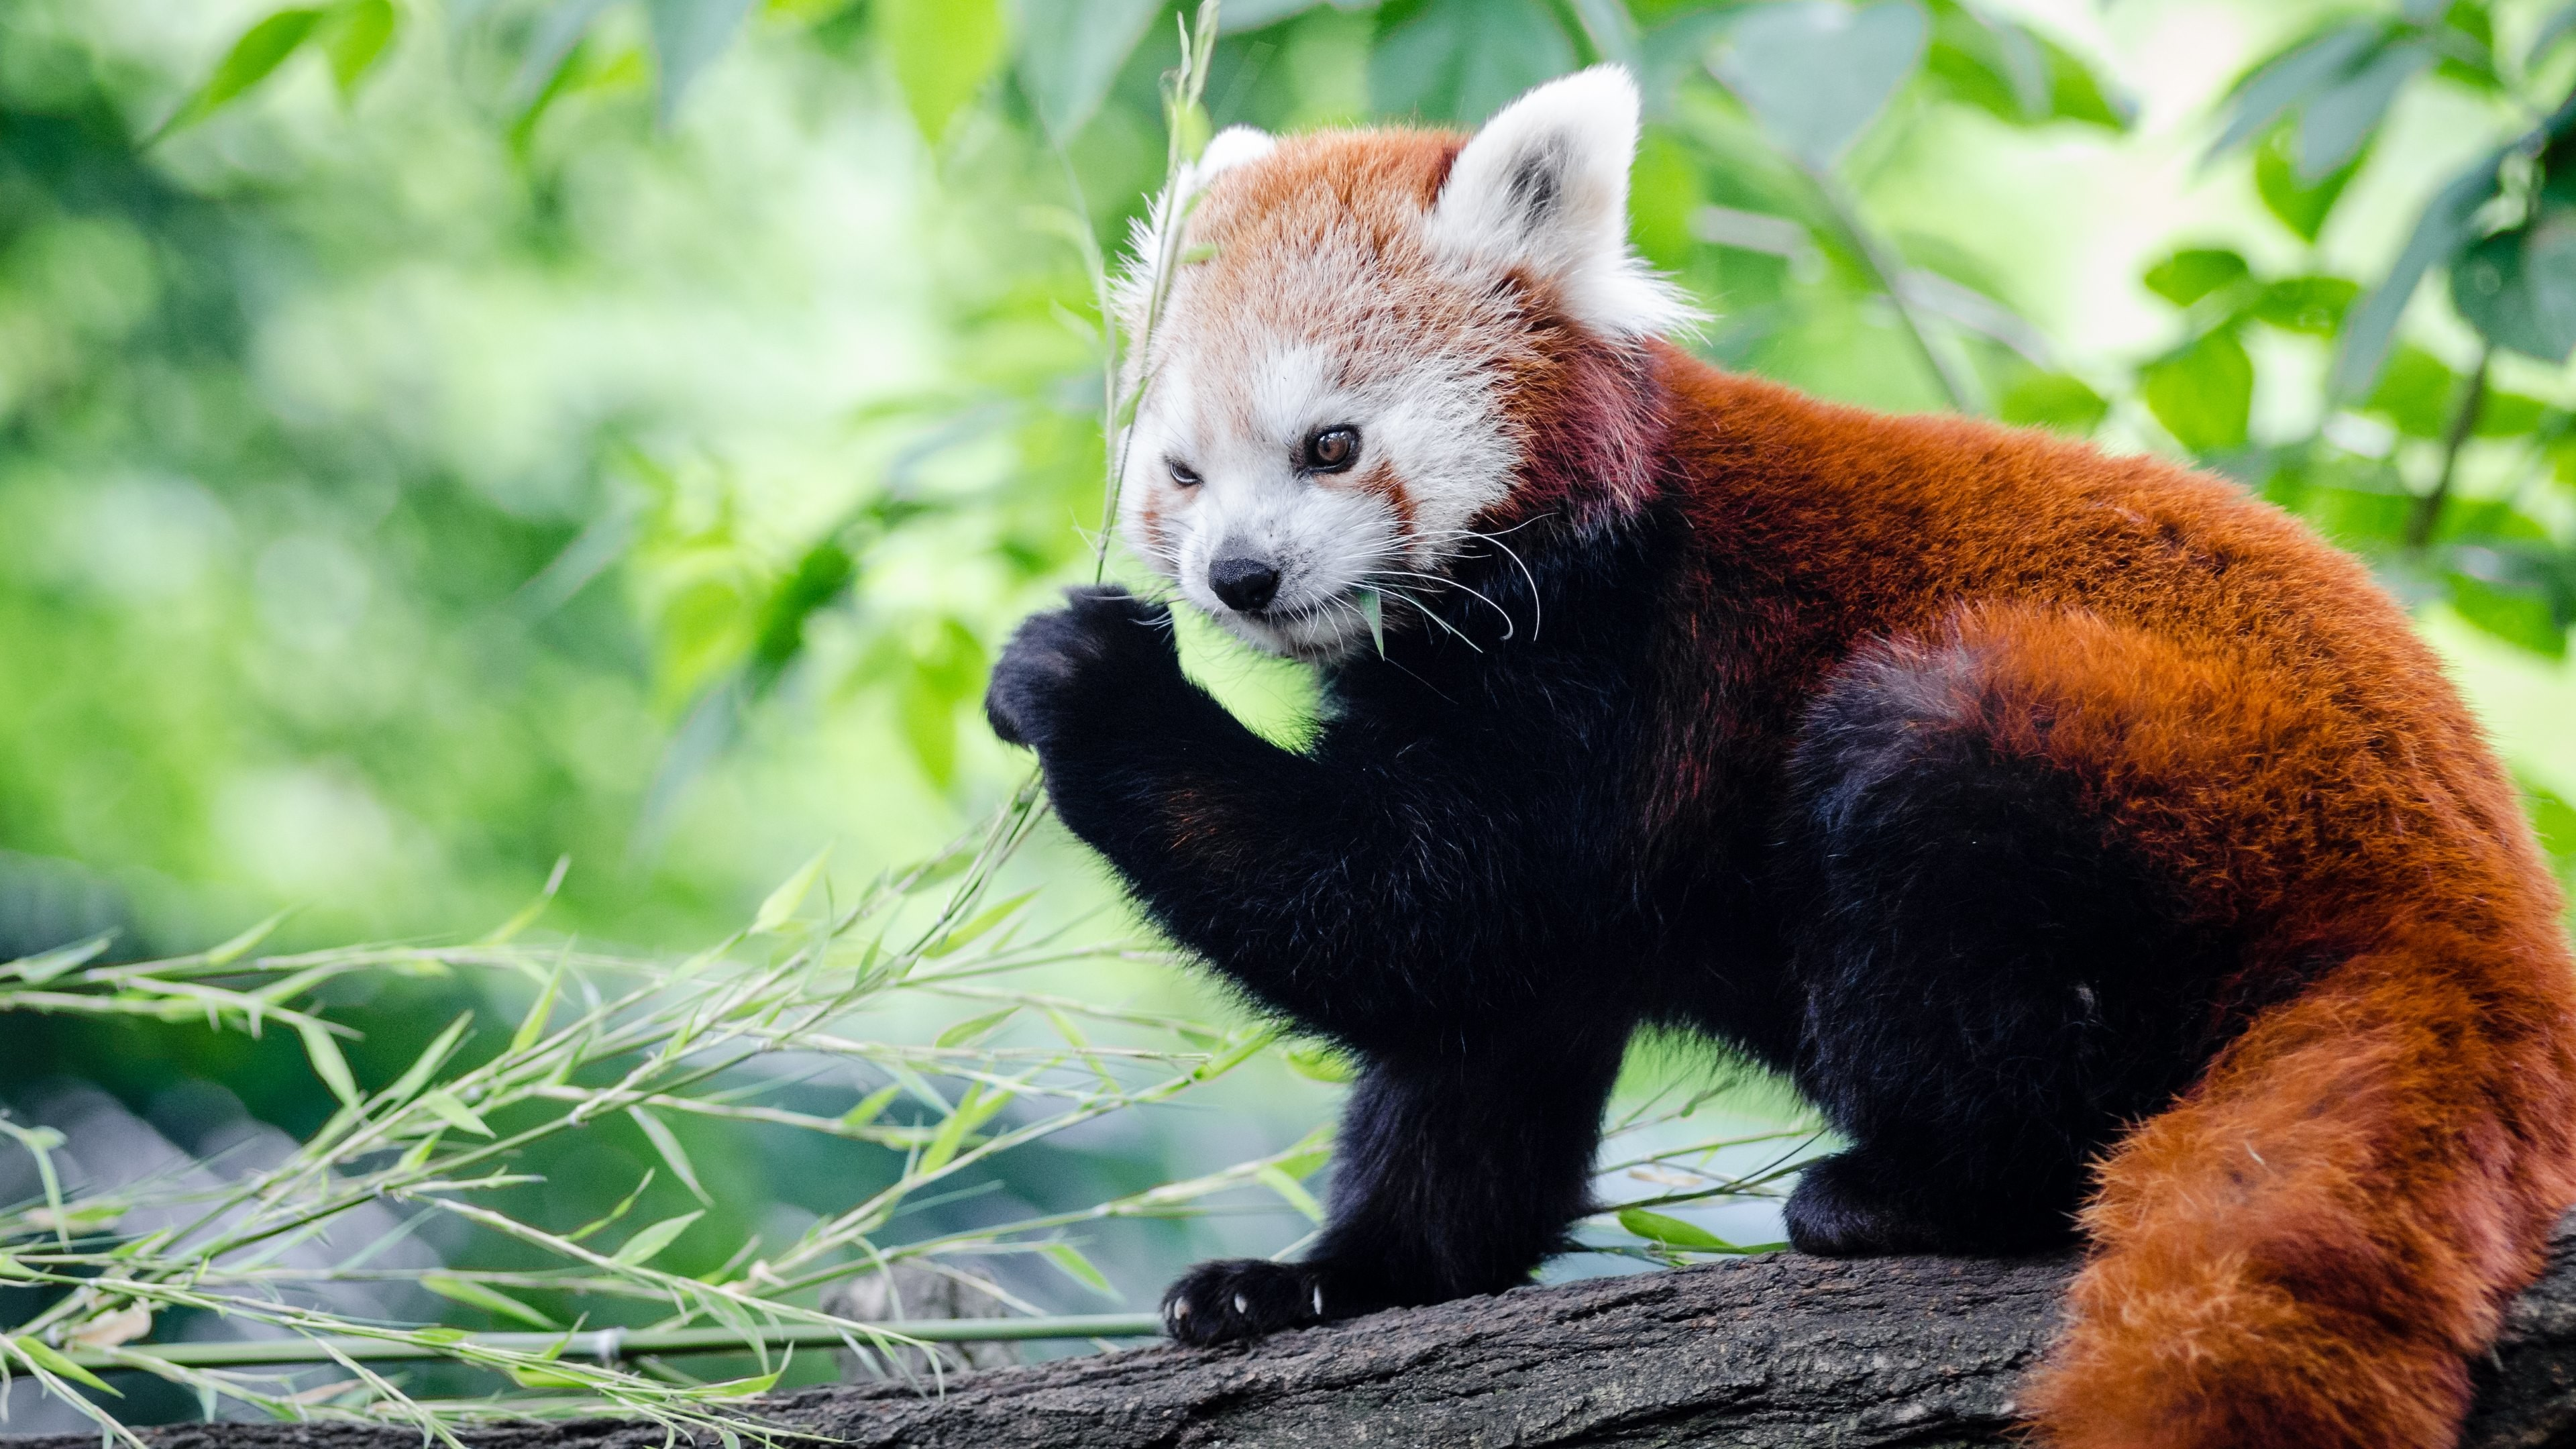 Res: 3840x2160, Red Panda Wallpapers 20 - 3840 X 2160